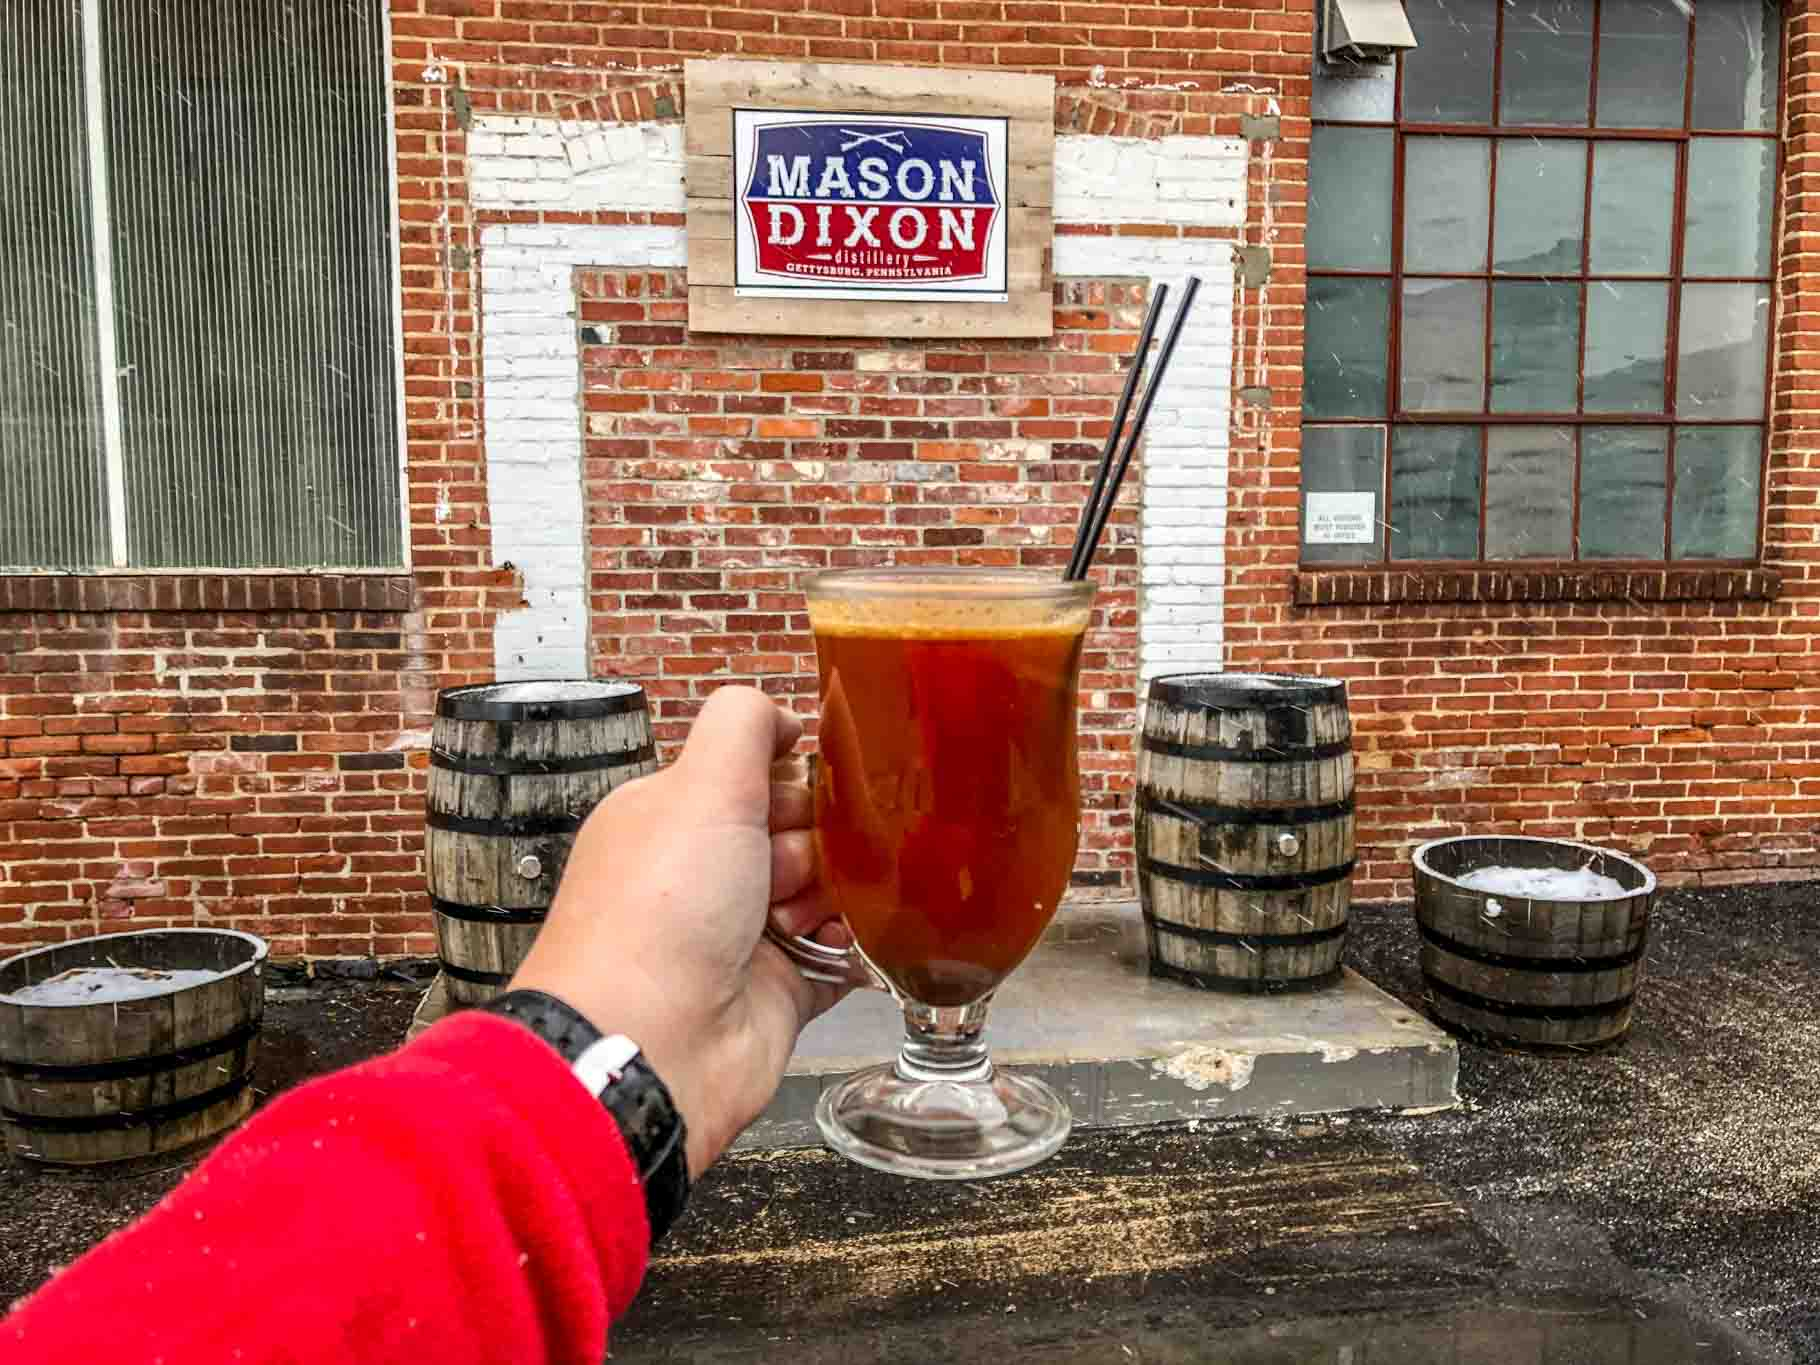 Mason Dixon Distillery is one of the fun places to visit in Gettysburg PA